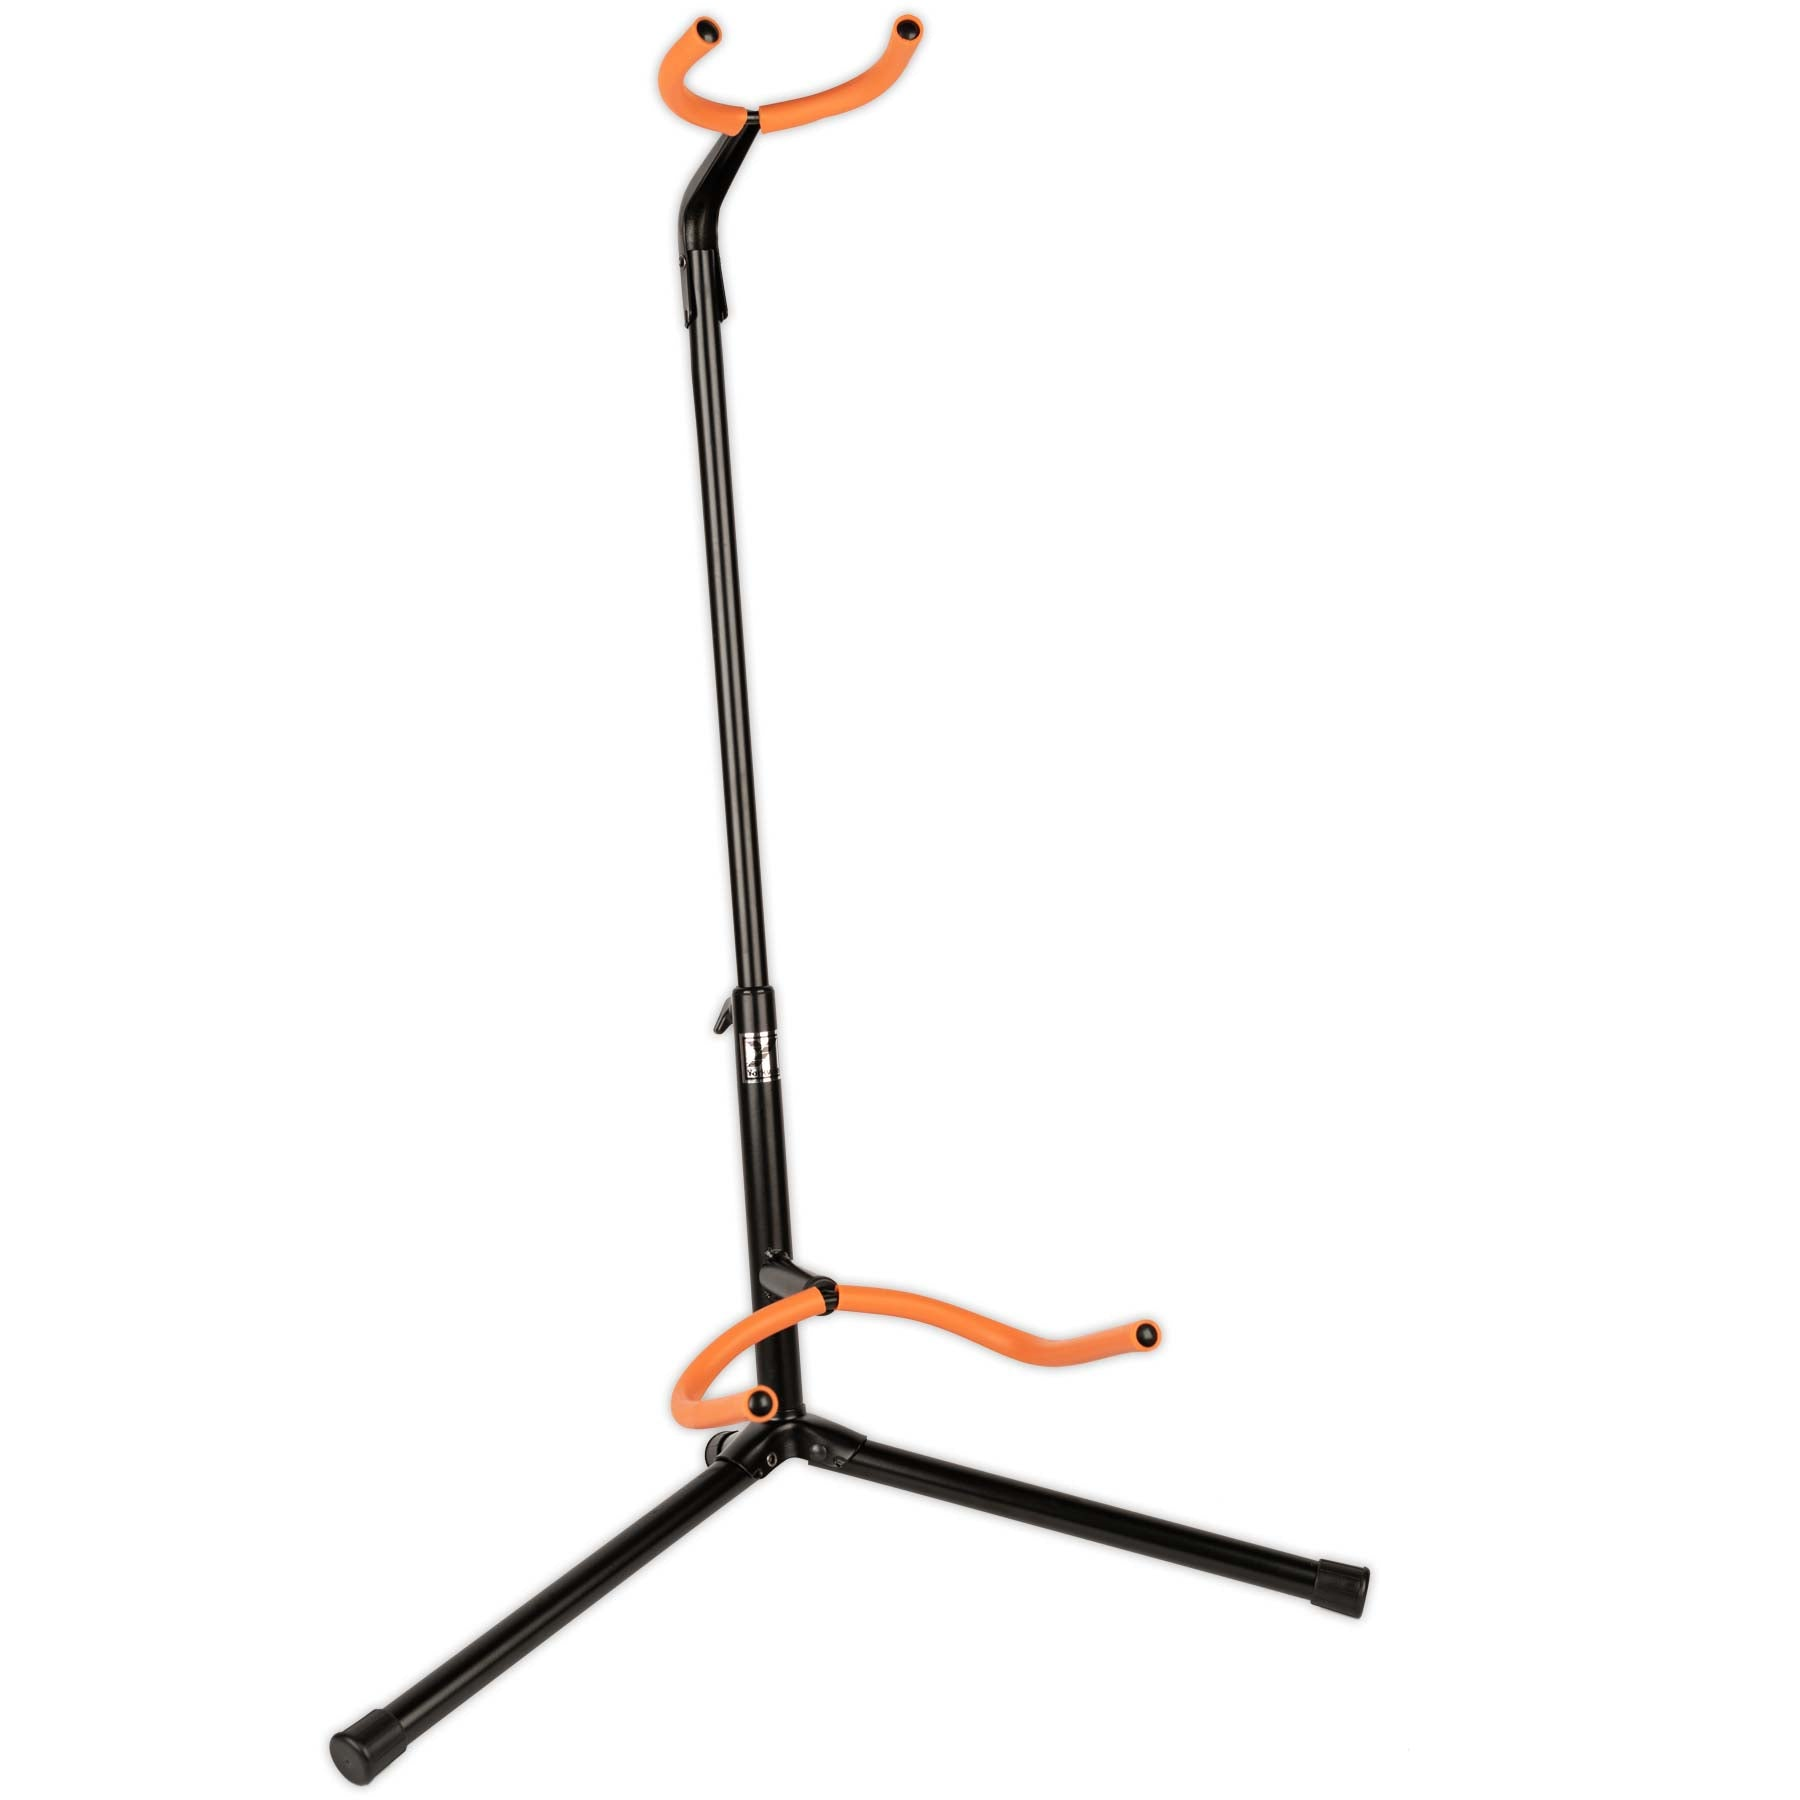 YORKVILLE SINGLE GUITAR STAND